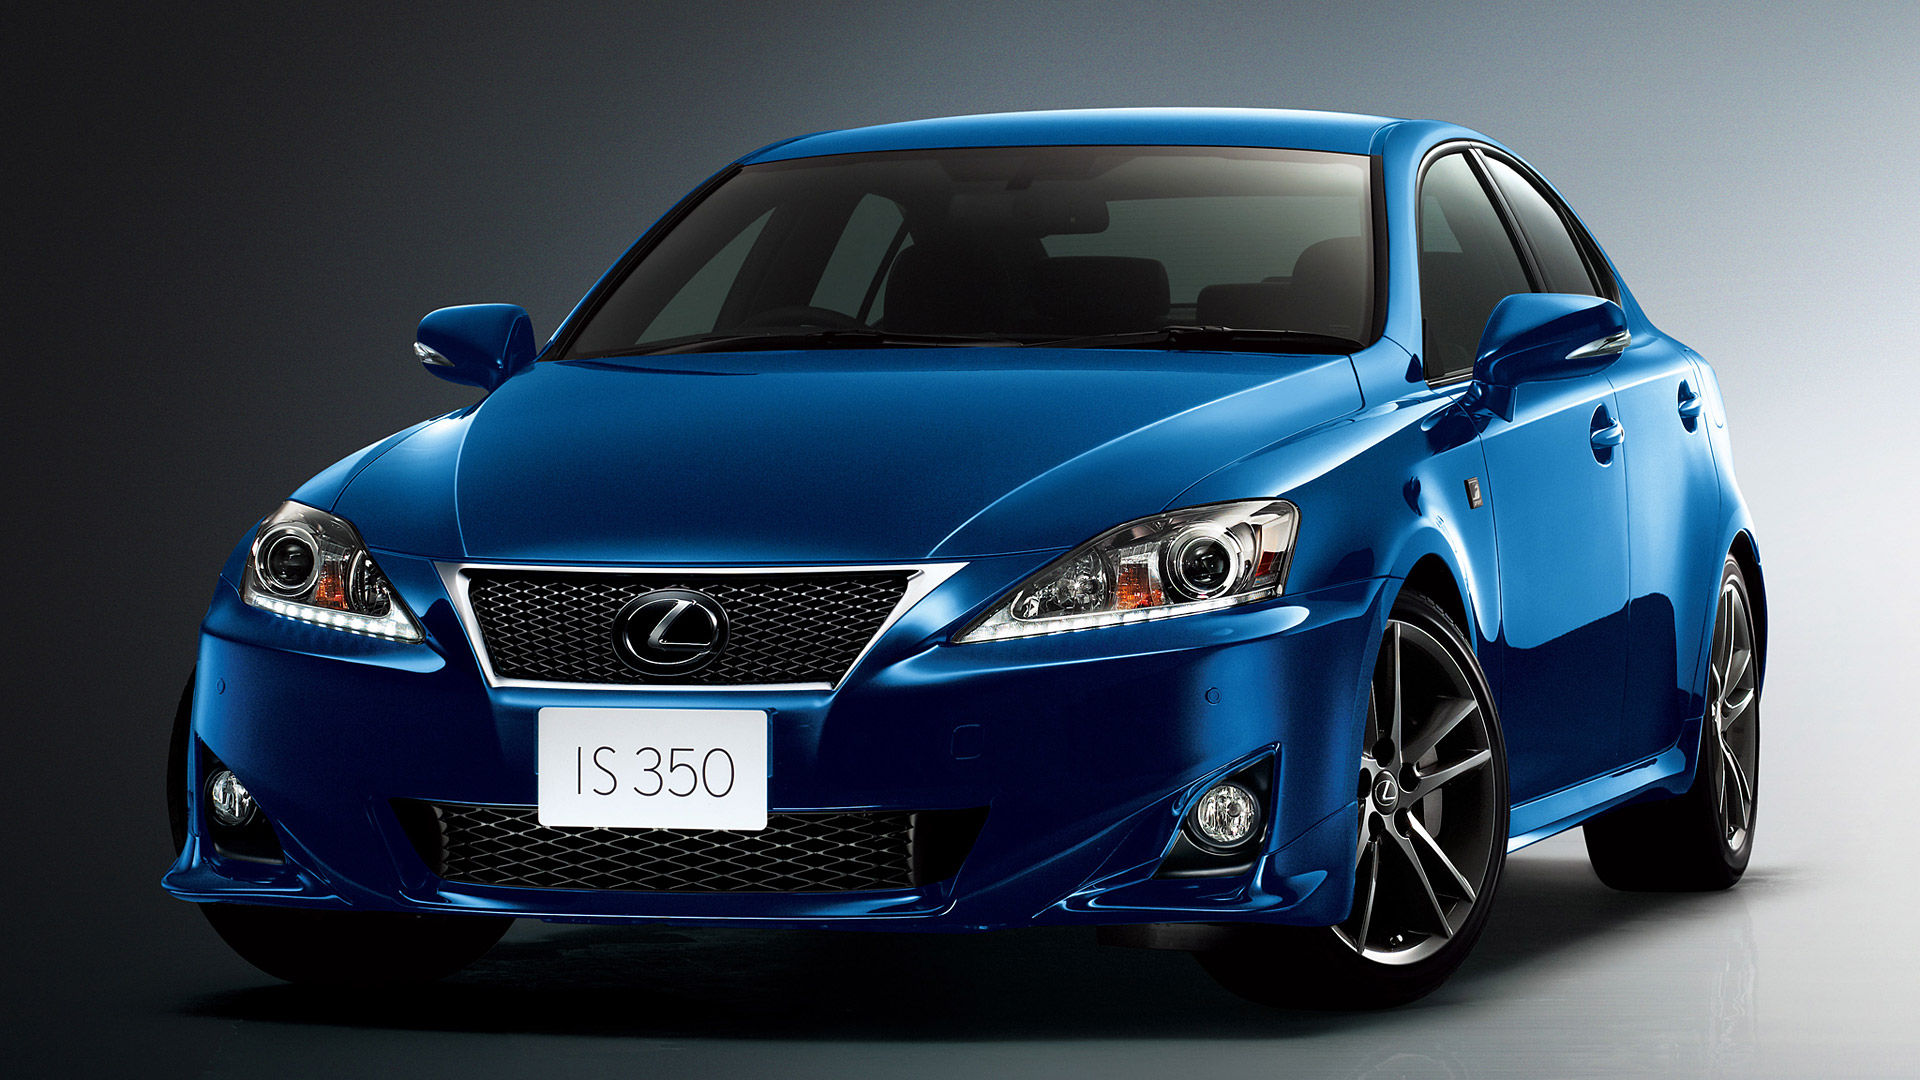 2010 Lexus IS 250 F Sport